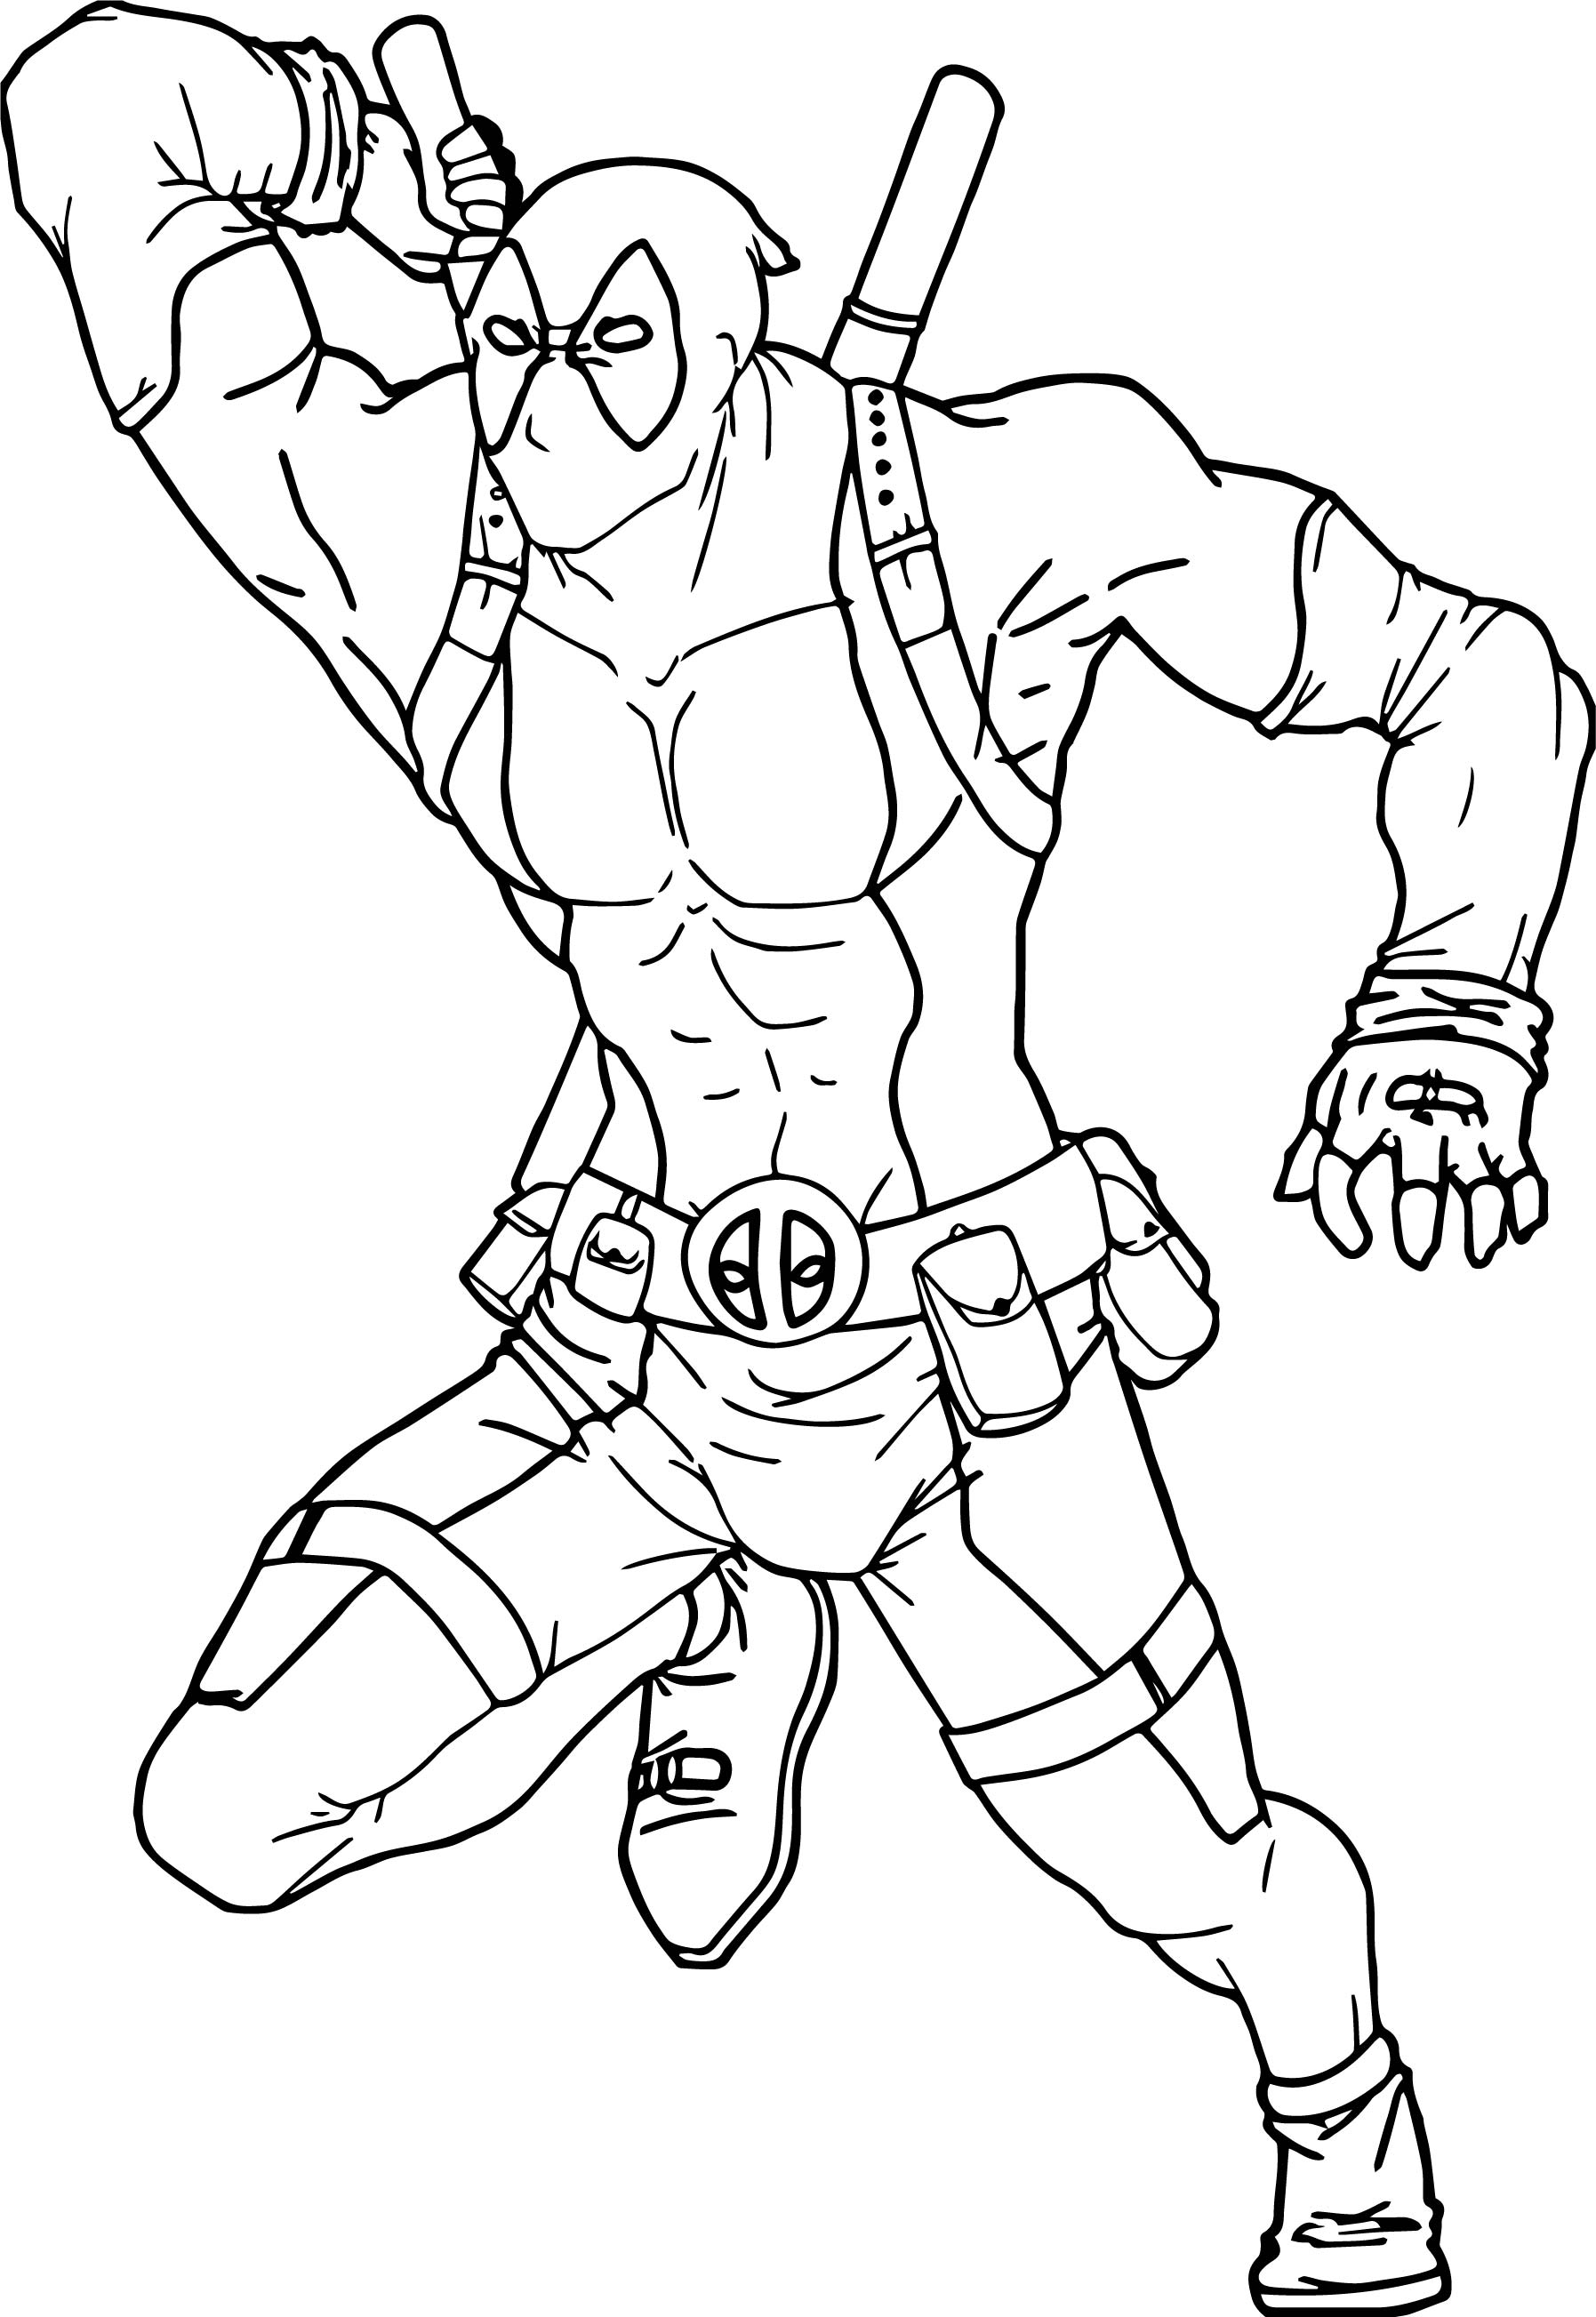 deadpool printable coloring pages - deadpool attack coloring page